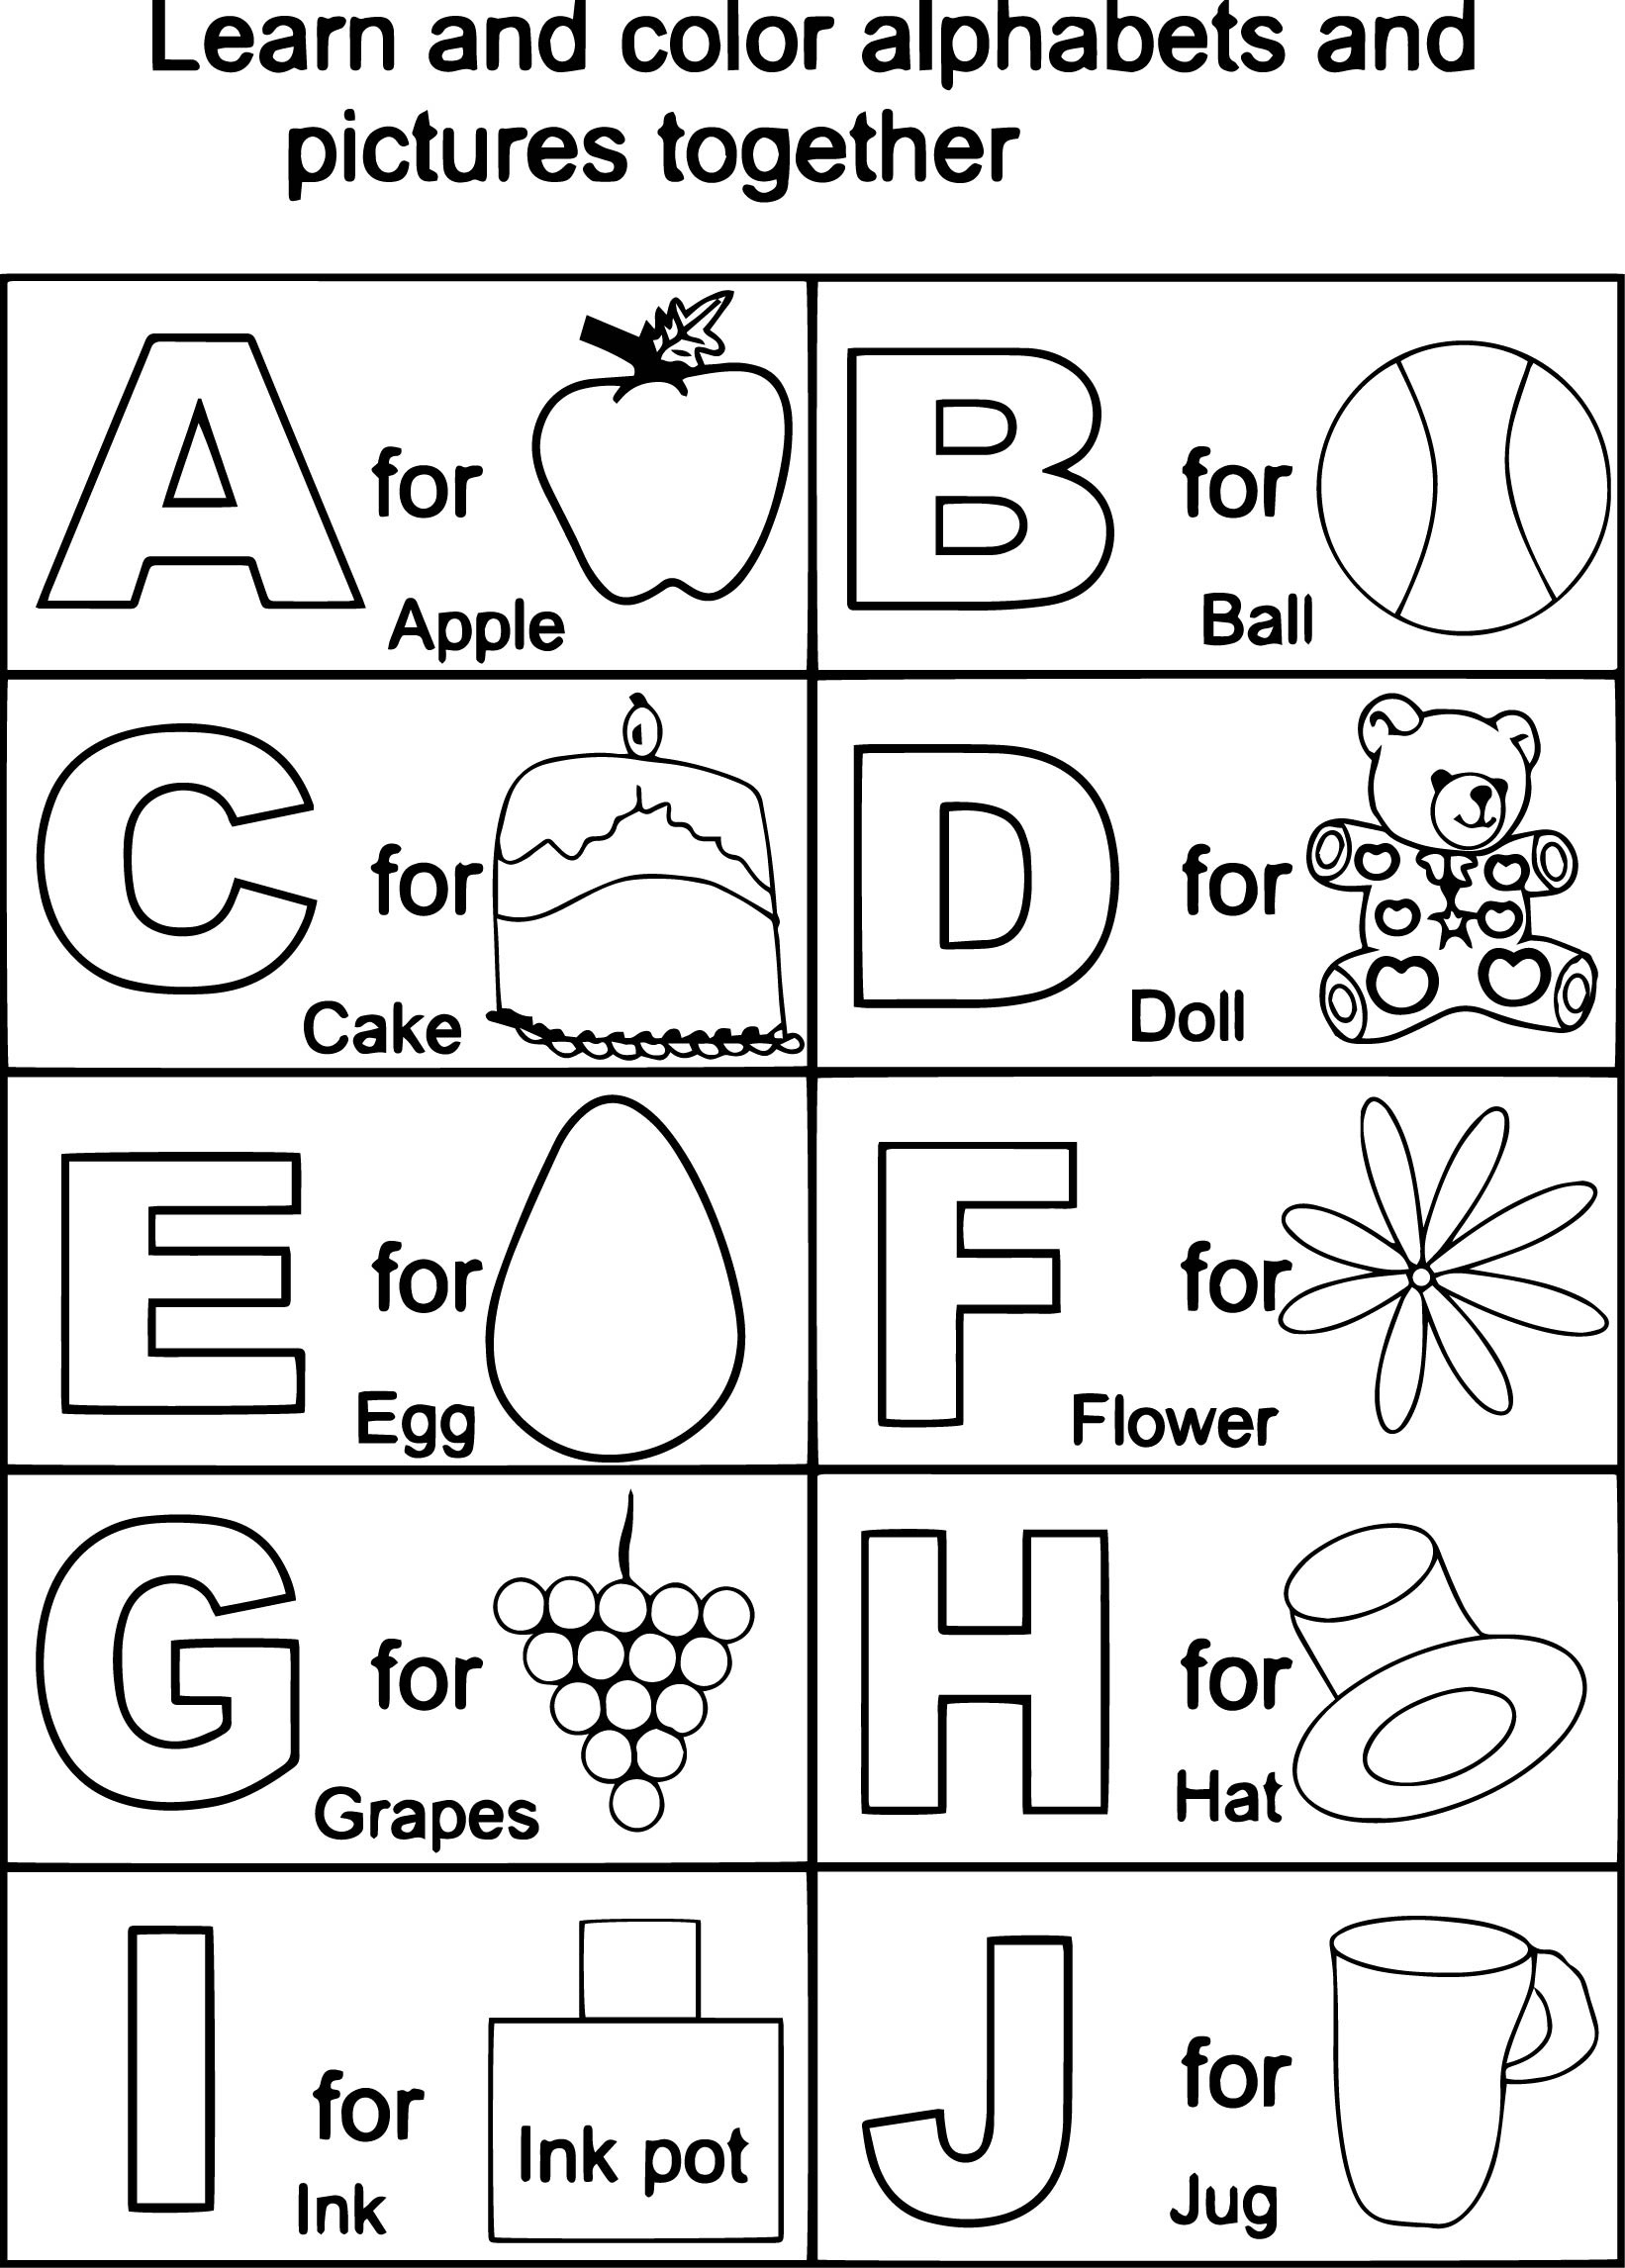 Coloring Pages : Coloring Pages Tremendous Free Printable Alphabet - Free Printable Alphabet Coloring Pages